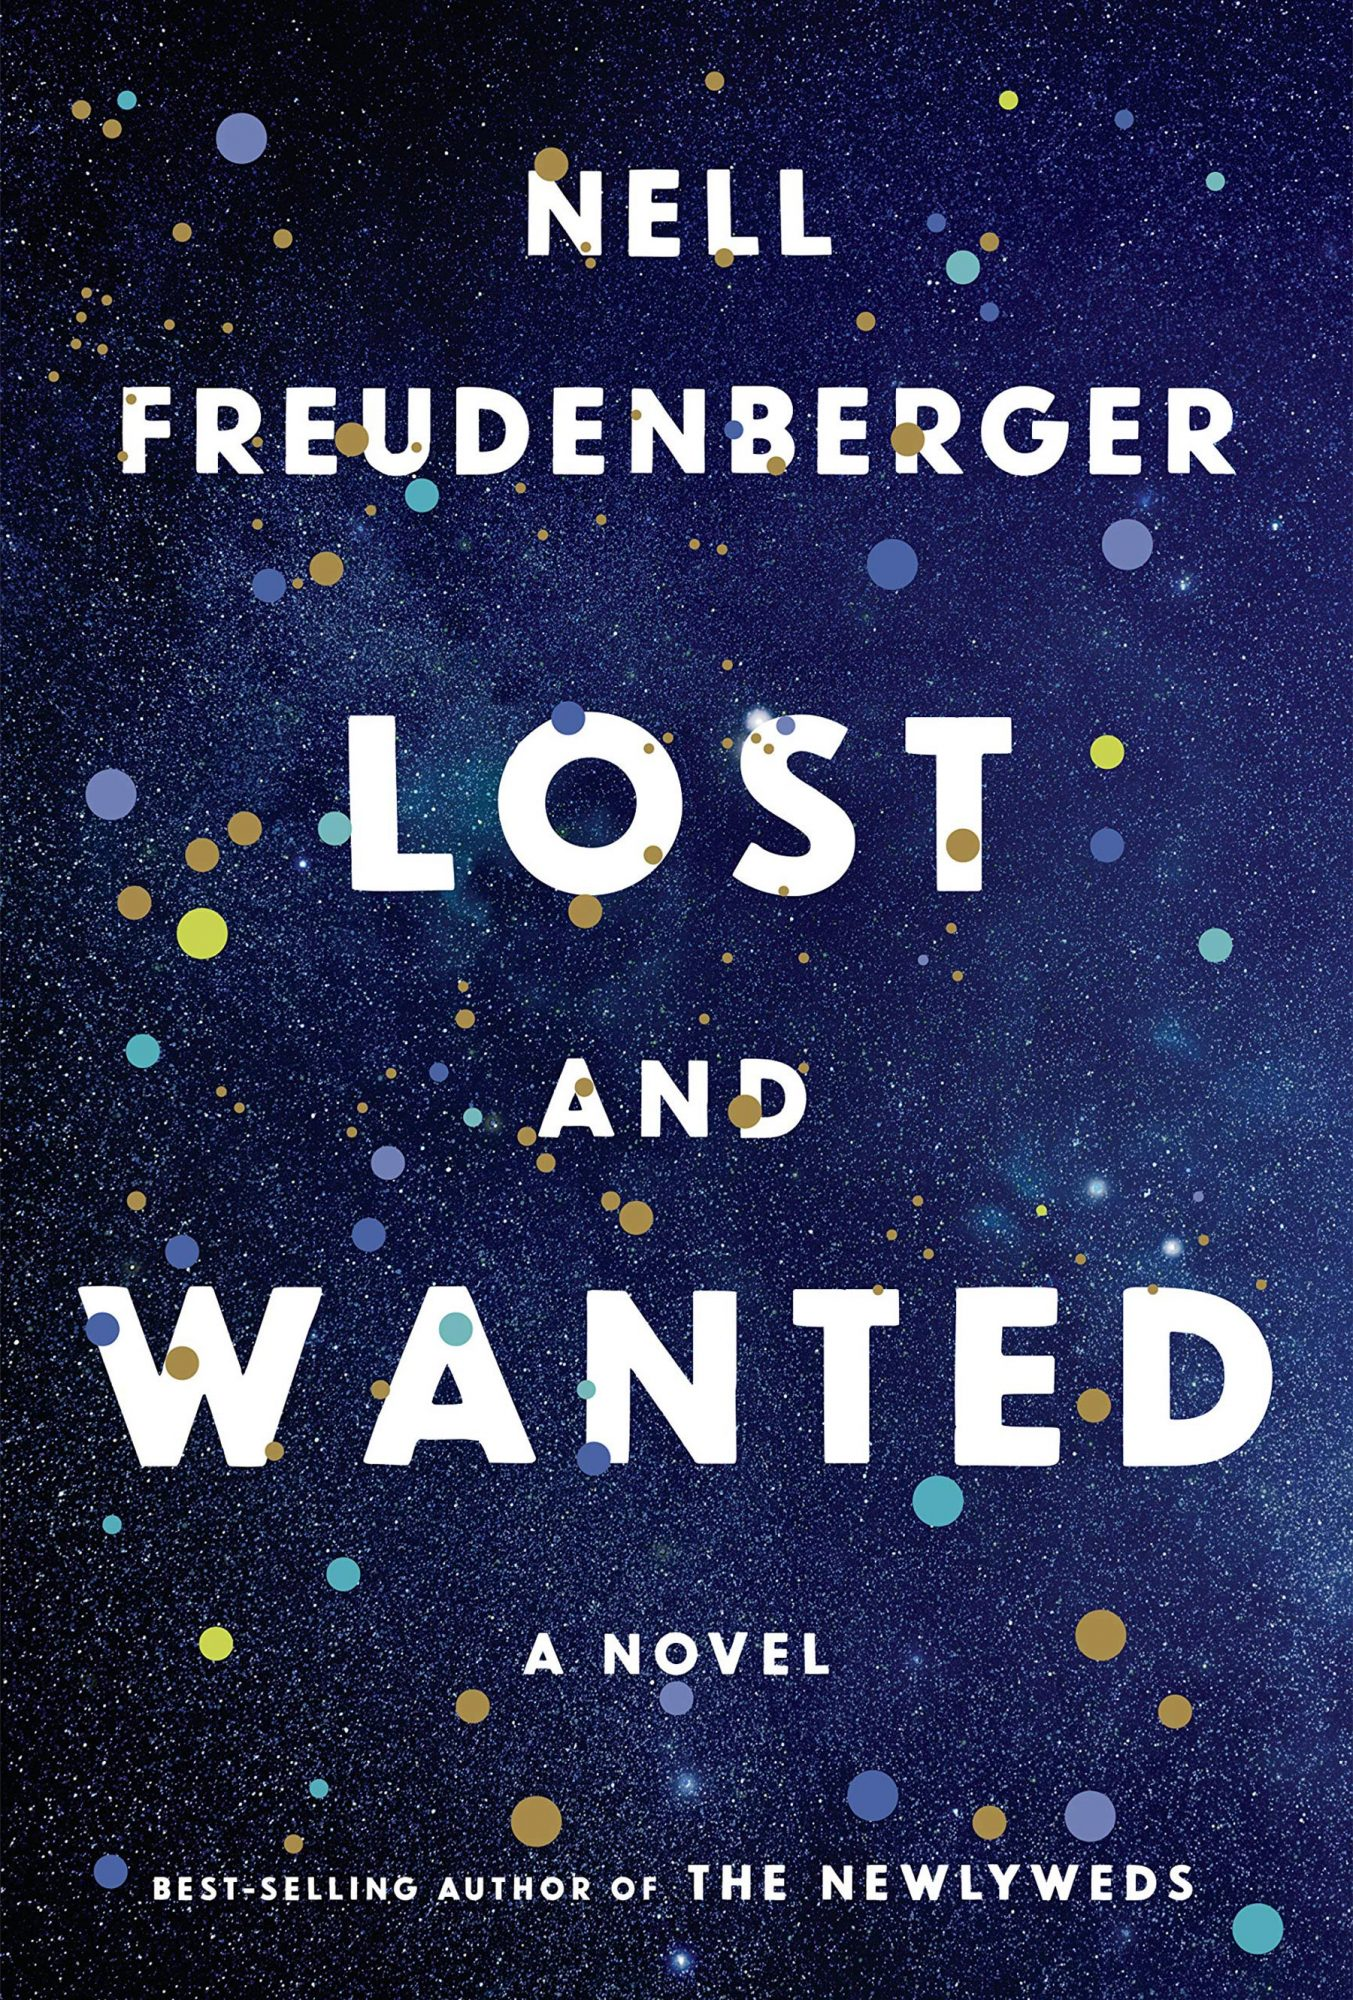 Nell Freudenberger, Lost and FoundPublisher: Knopf